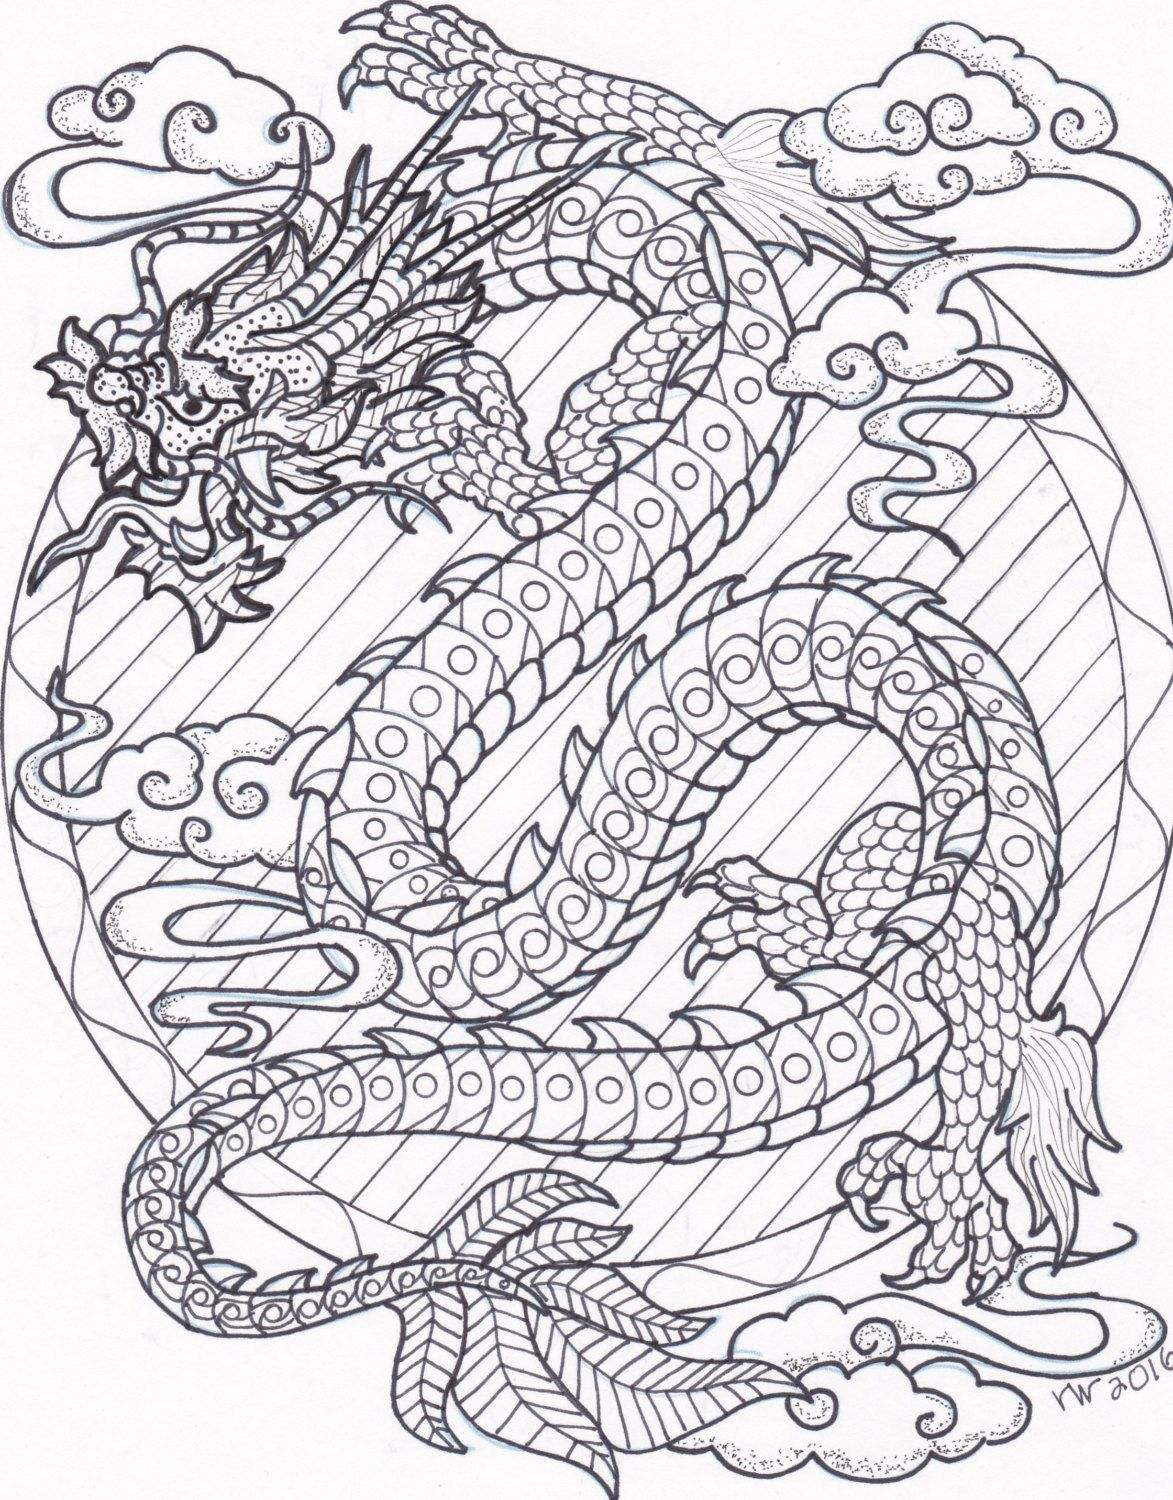 Chinese Dragon Zentangle Coloring Page Digital Download Dragon Coloring Page Snake Coloring Pages Coloring Books